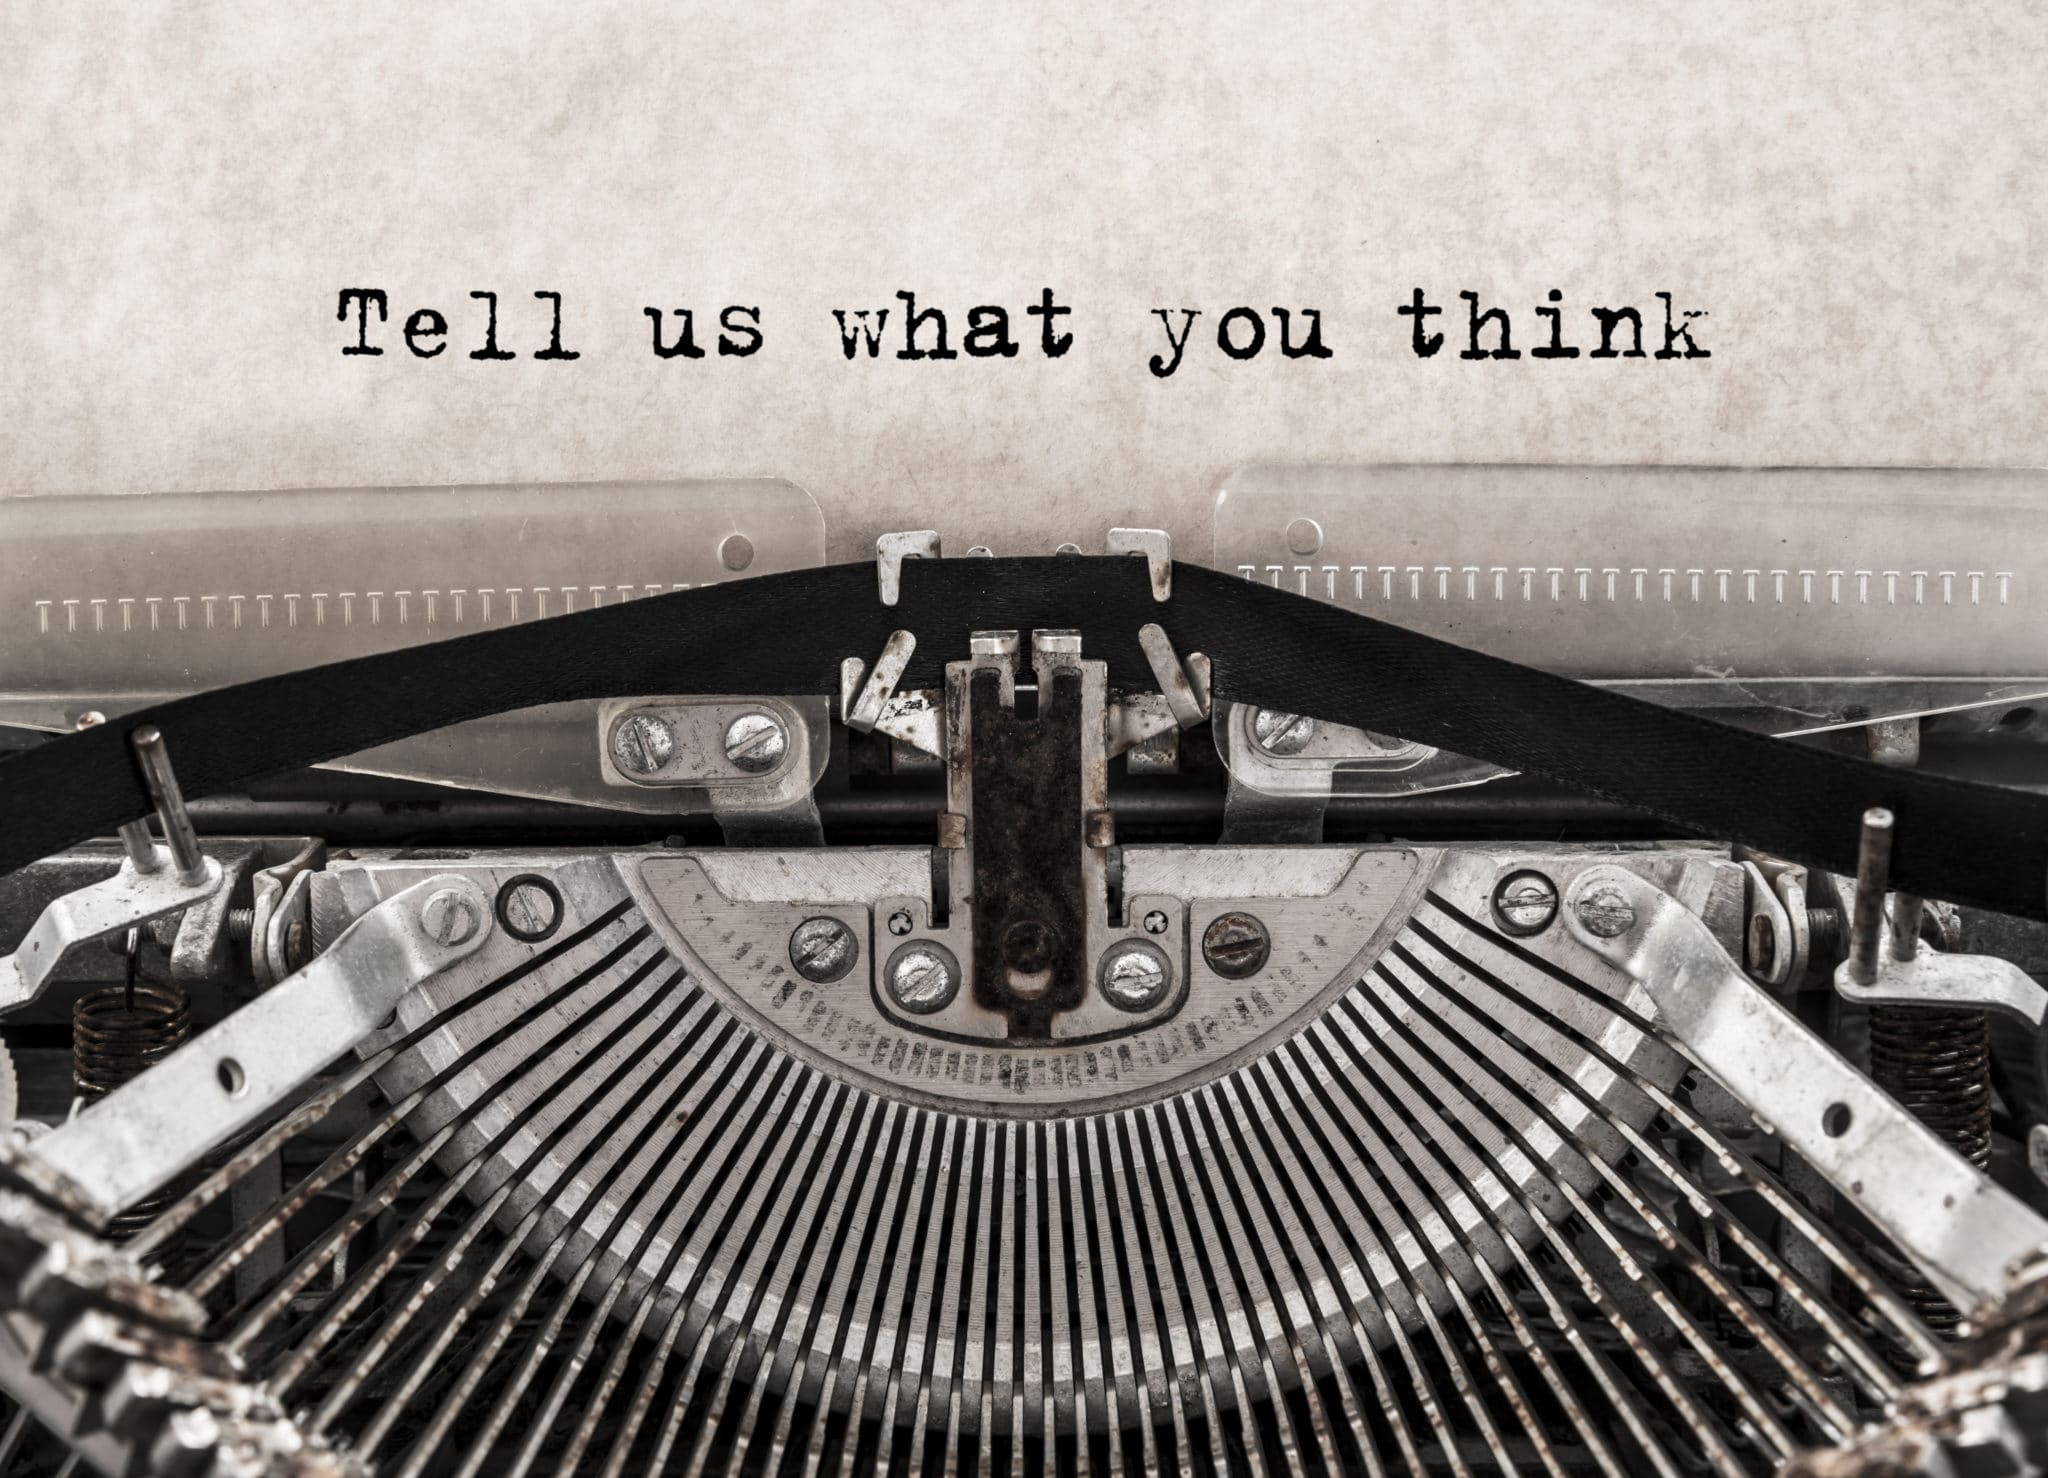 Vintage type writer with message 'tell us what you think' written on the inserted page